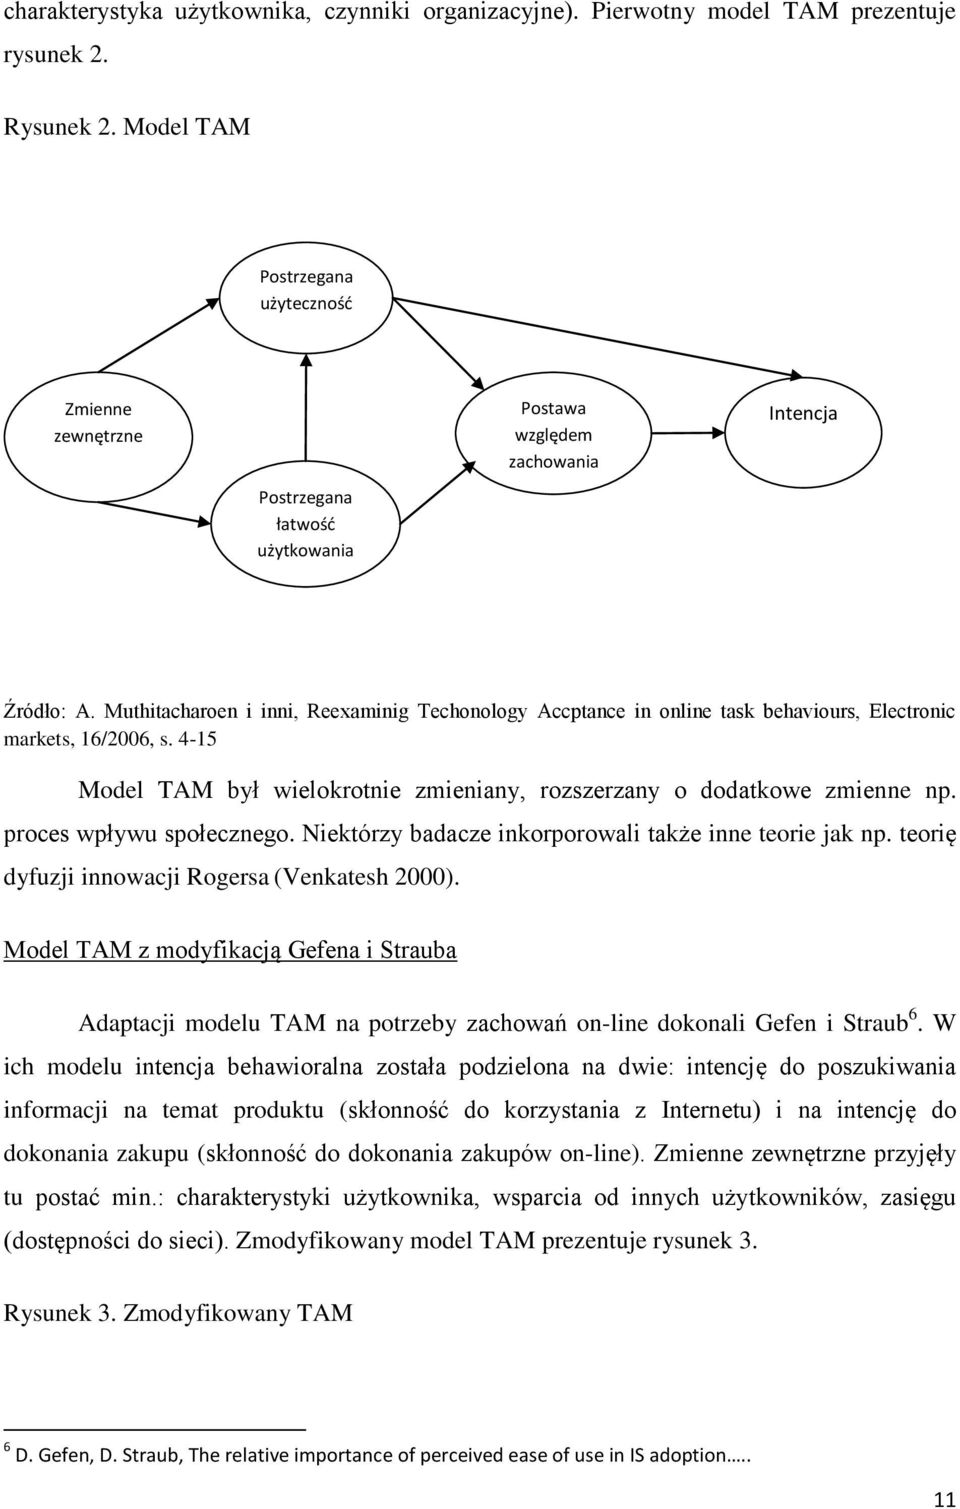 Muthitacharoen i inni, Reexaminig Techonology Accptance in online task behaviours, Electronic markets, 16/2006, s. 4-15 Model TAM był wielokrotnie zmieniany, rozszerzany o dodatkowe zmienne np.